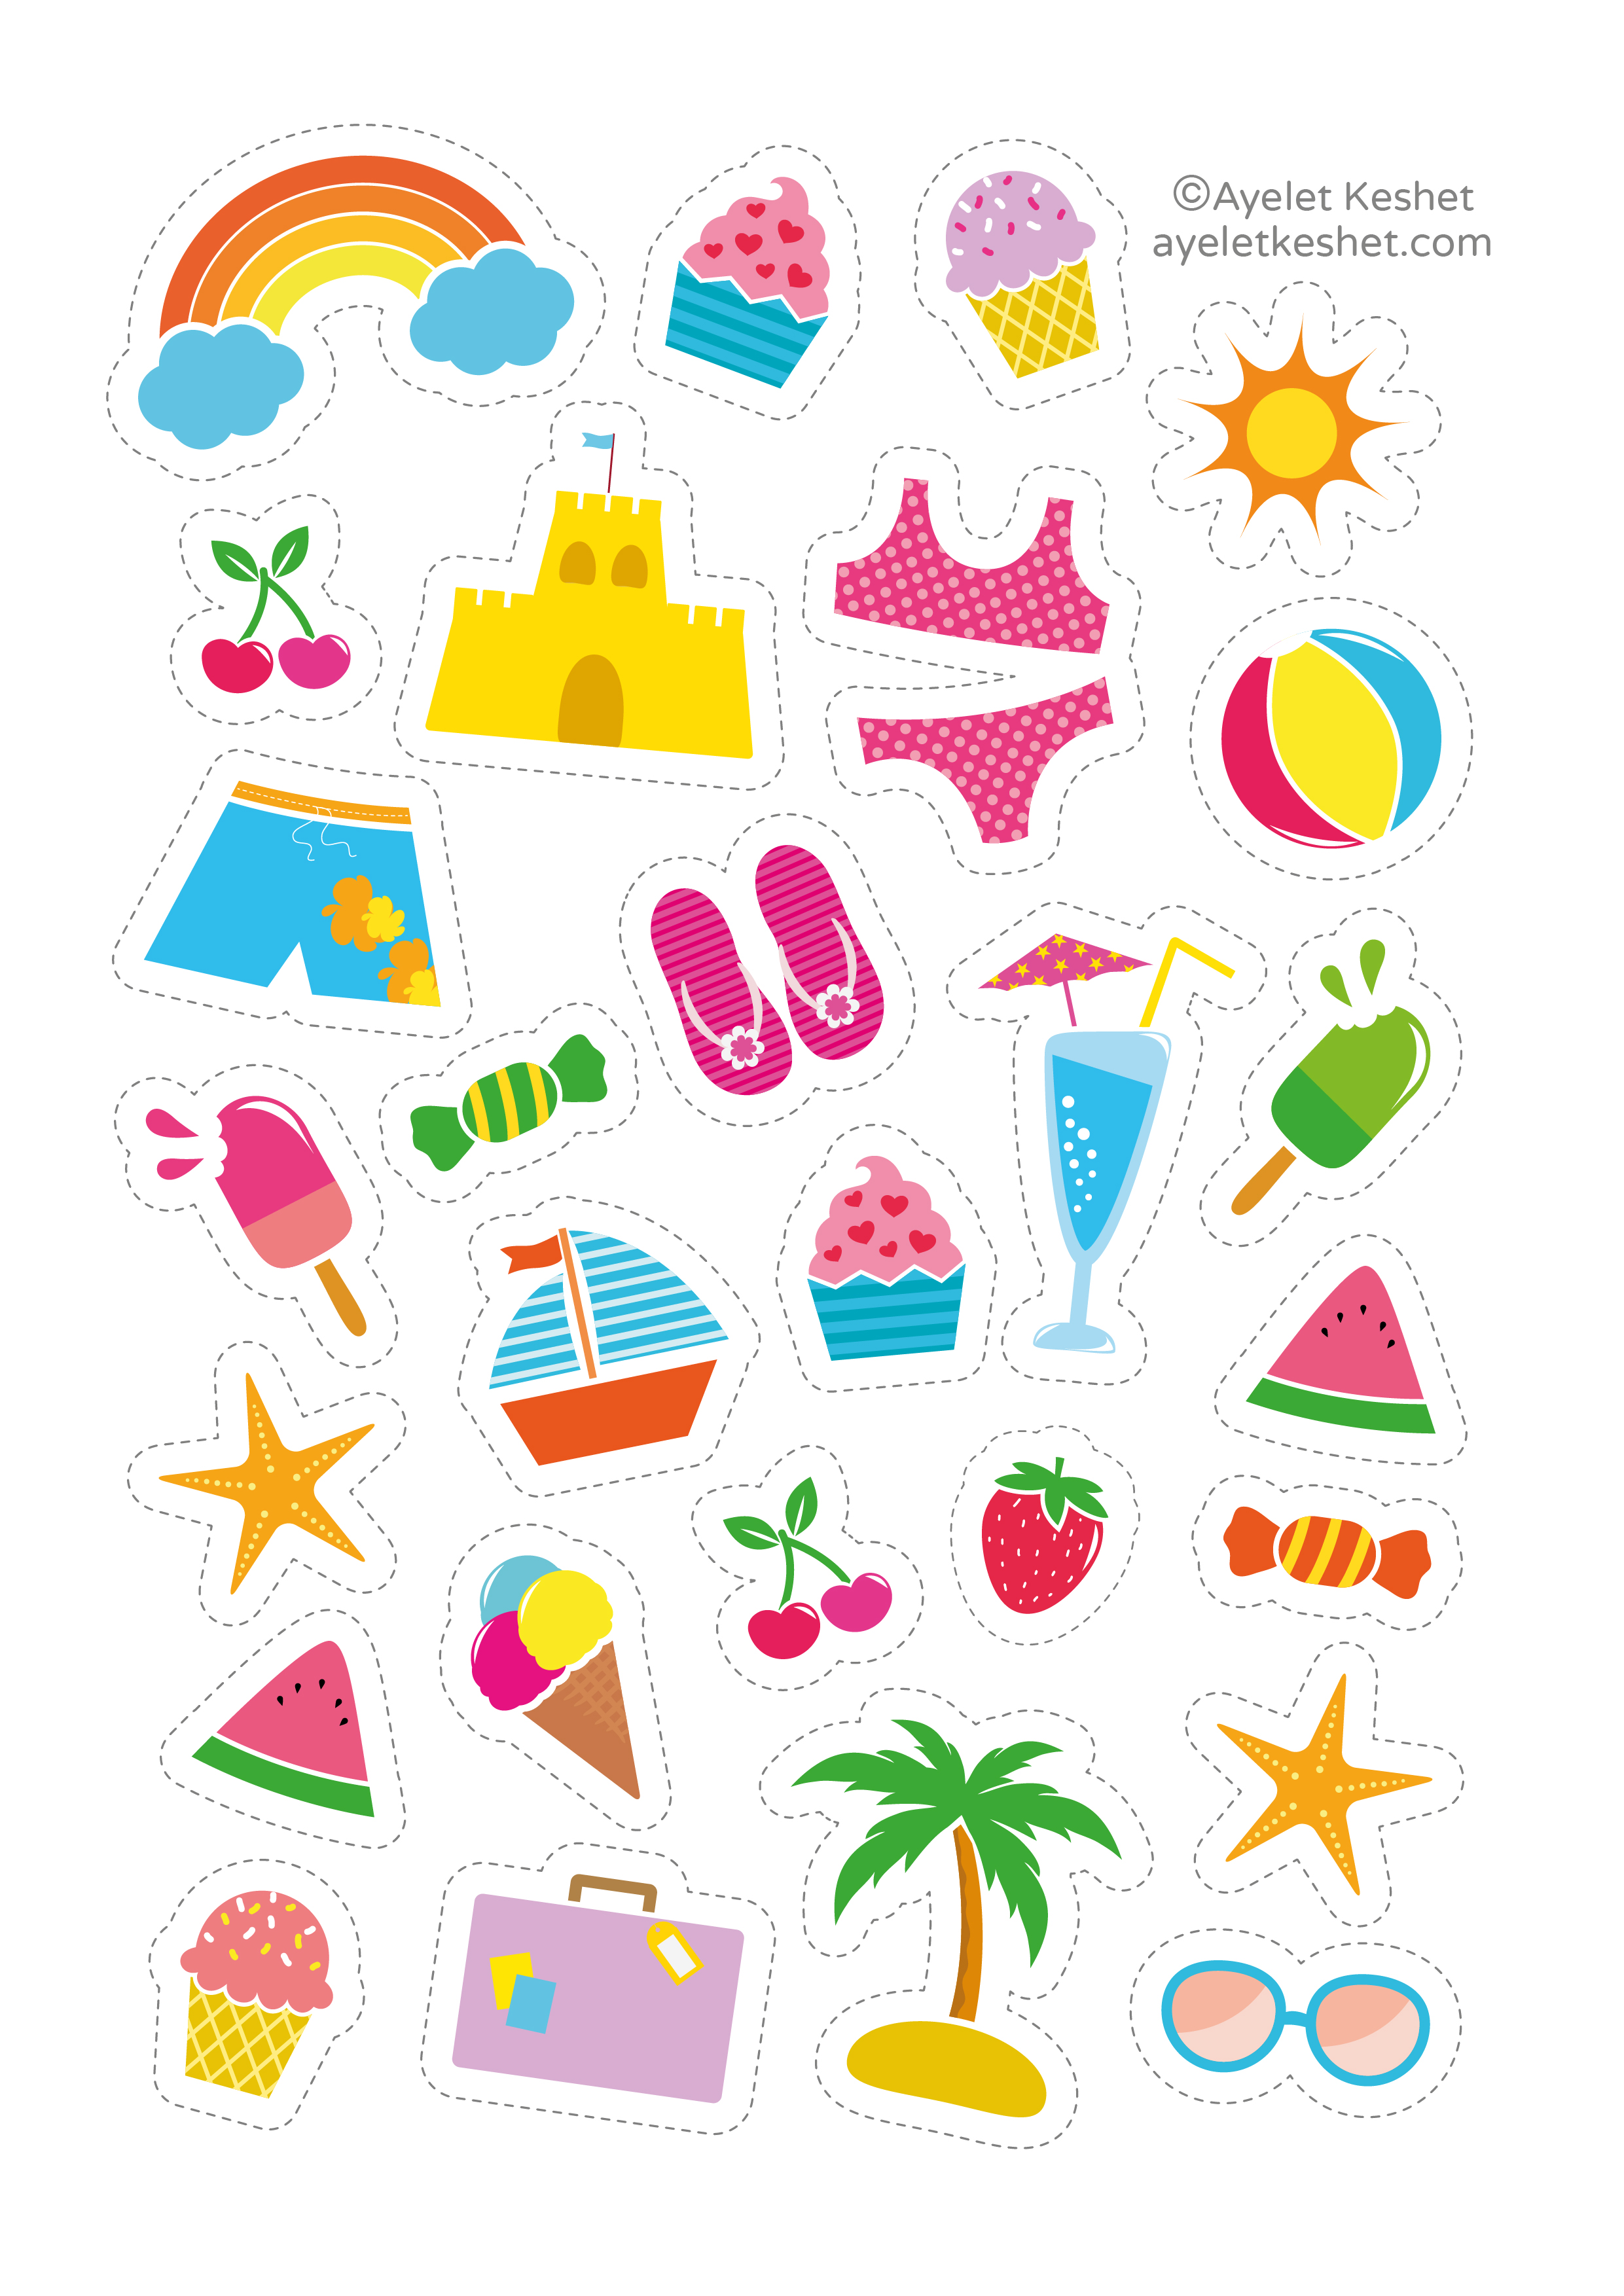 image relating to Printable Sticker Sheets known as Cost-free printable stickers - Ayelet Keshet